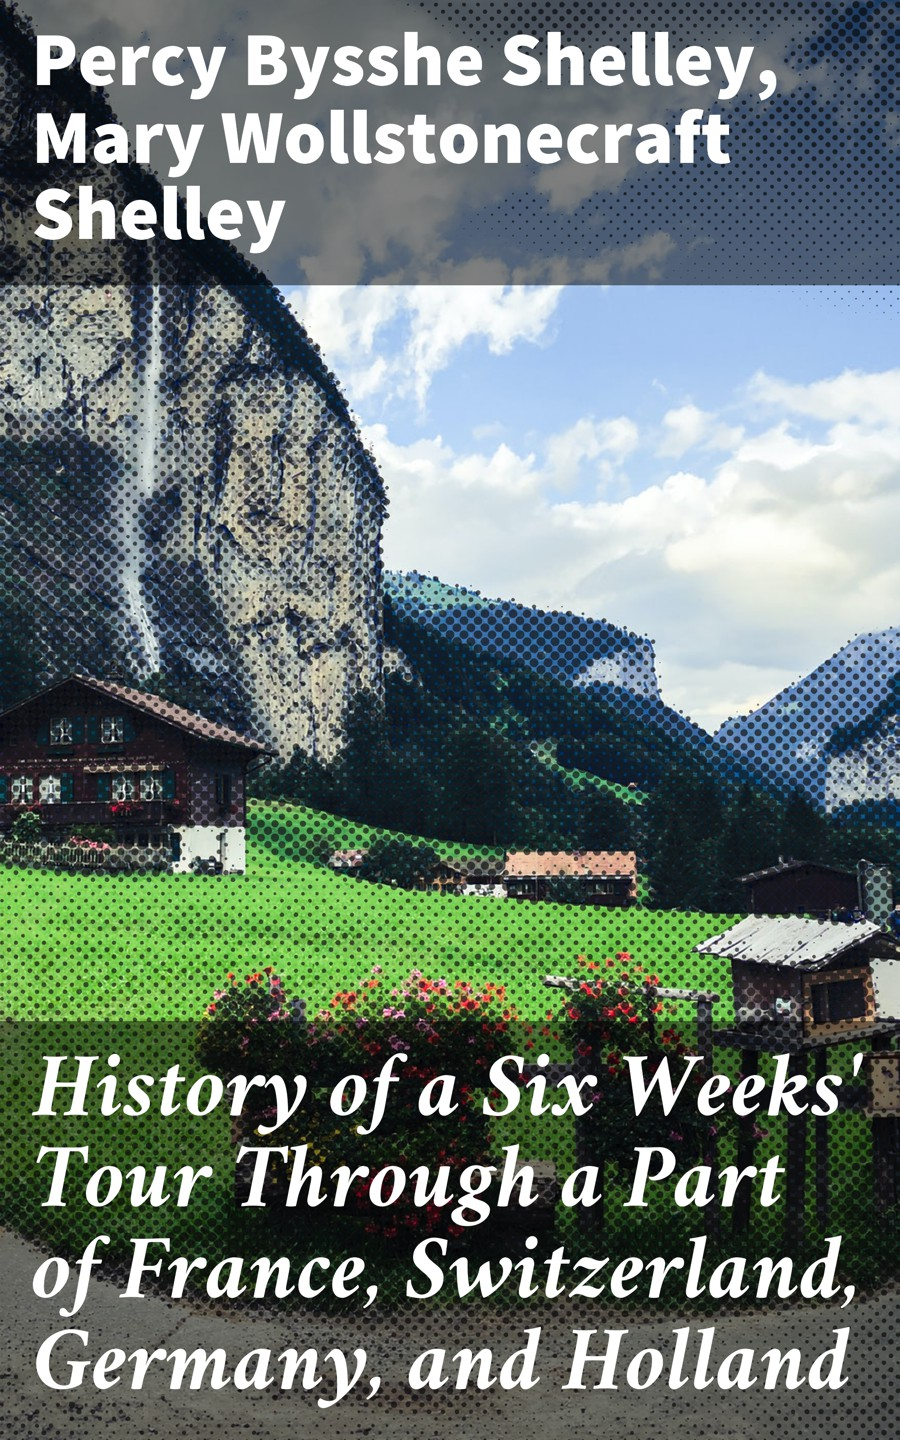 лучшая цена Мэри Шелли History of a Six Weeks' Tour Through a Part of France, Switzerland, Germany, and Holland